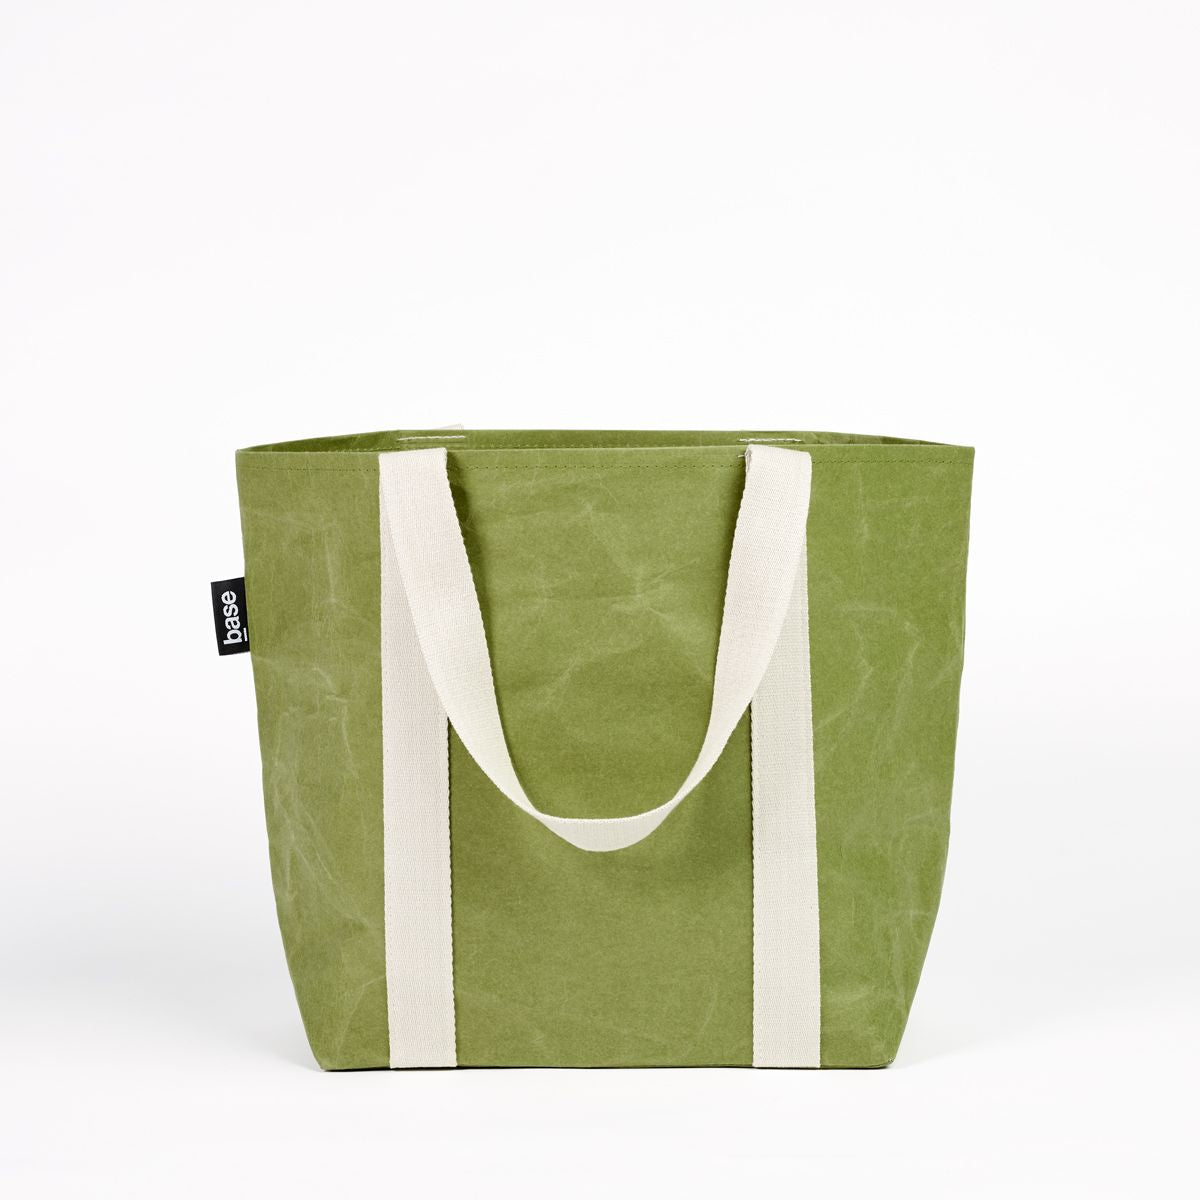 BASE BAGS | To-Market Washable Bags